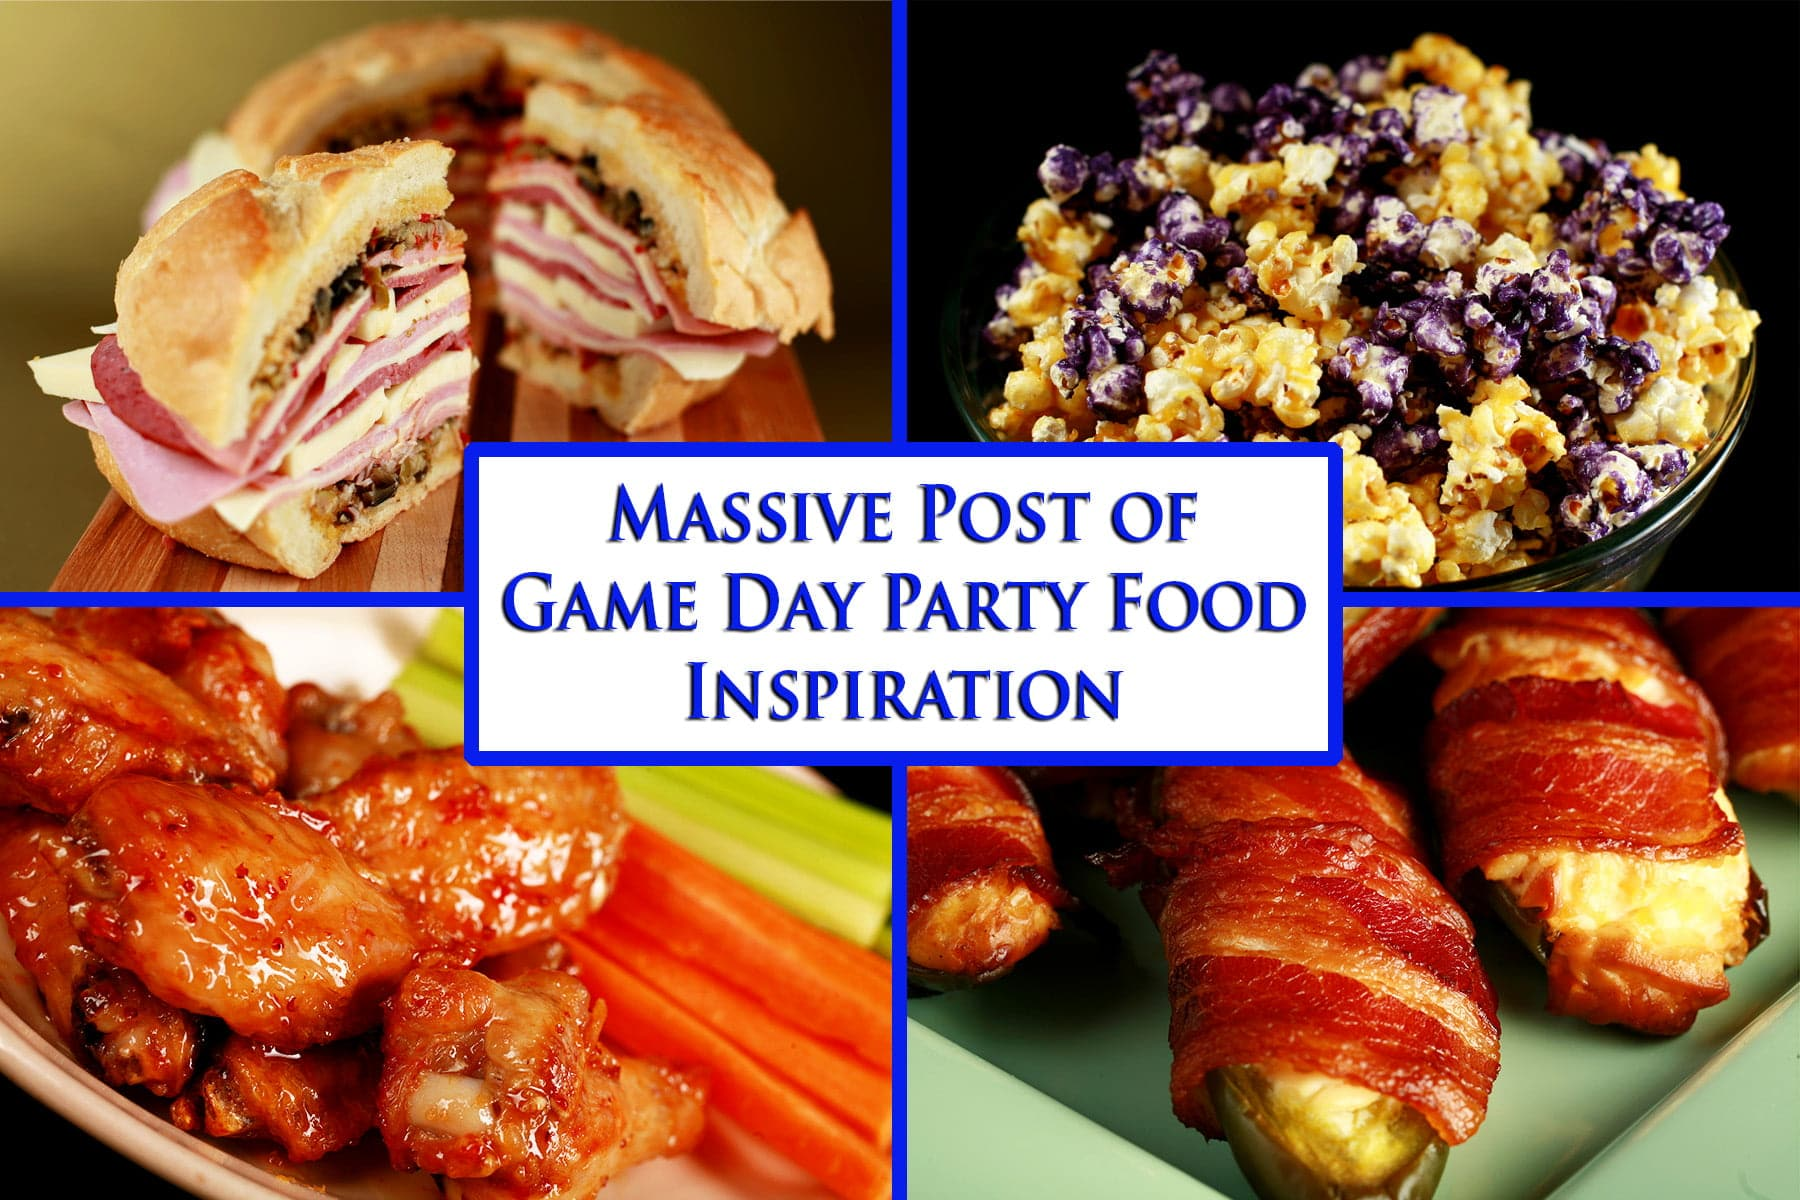 Compilation image featuring several photos of game day party foods.  Blue text overlay says Massive Post of Game Day Party Food Inspiration.